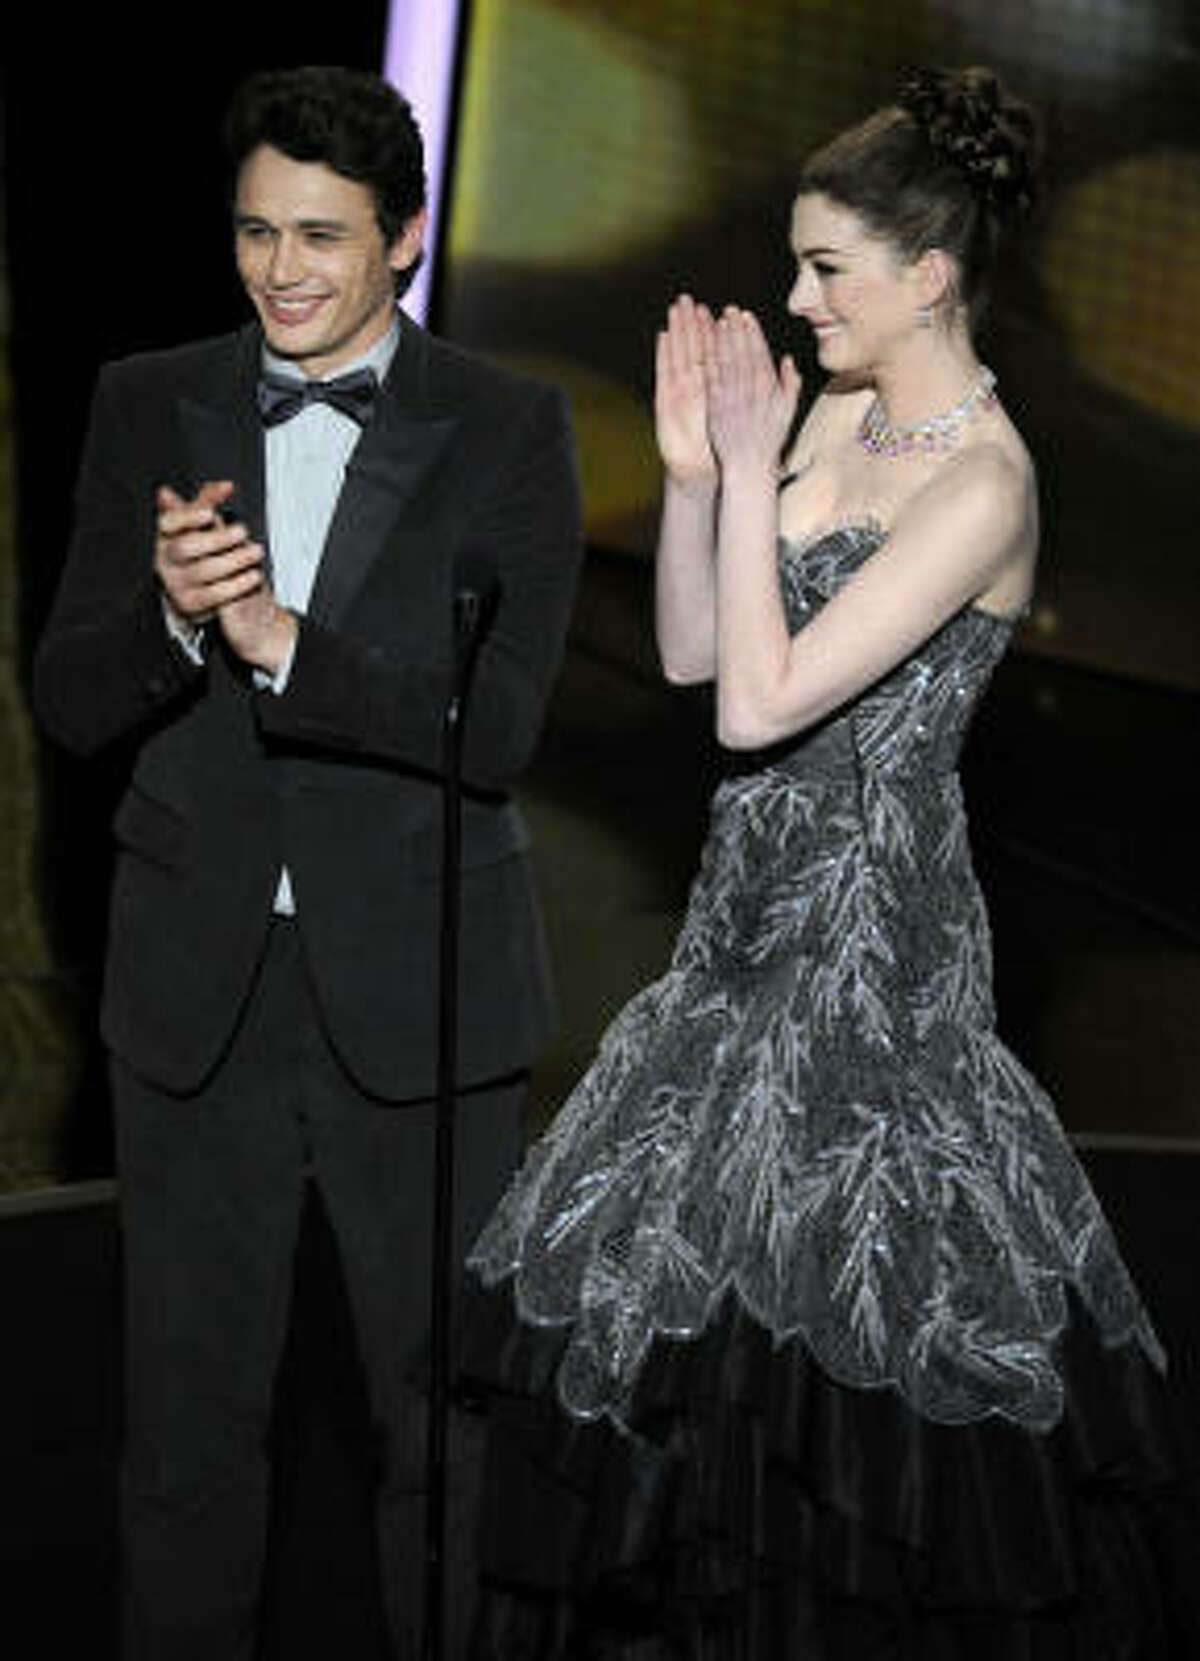 Show hosts James Franco, left, and Anne Hathaway are seen during the 83rd Academy Awards on Sunday, Feb. 27, 2011, in the Hollywood section of Los Angeles.